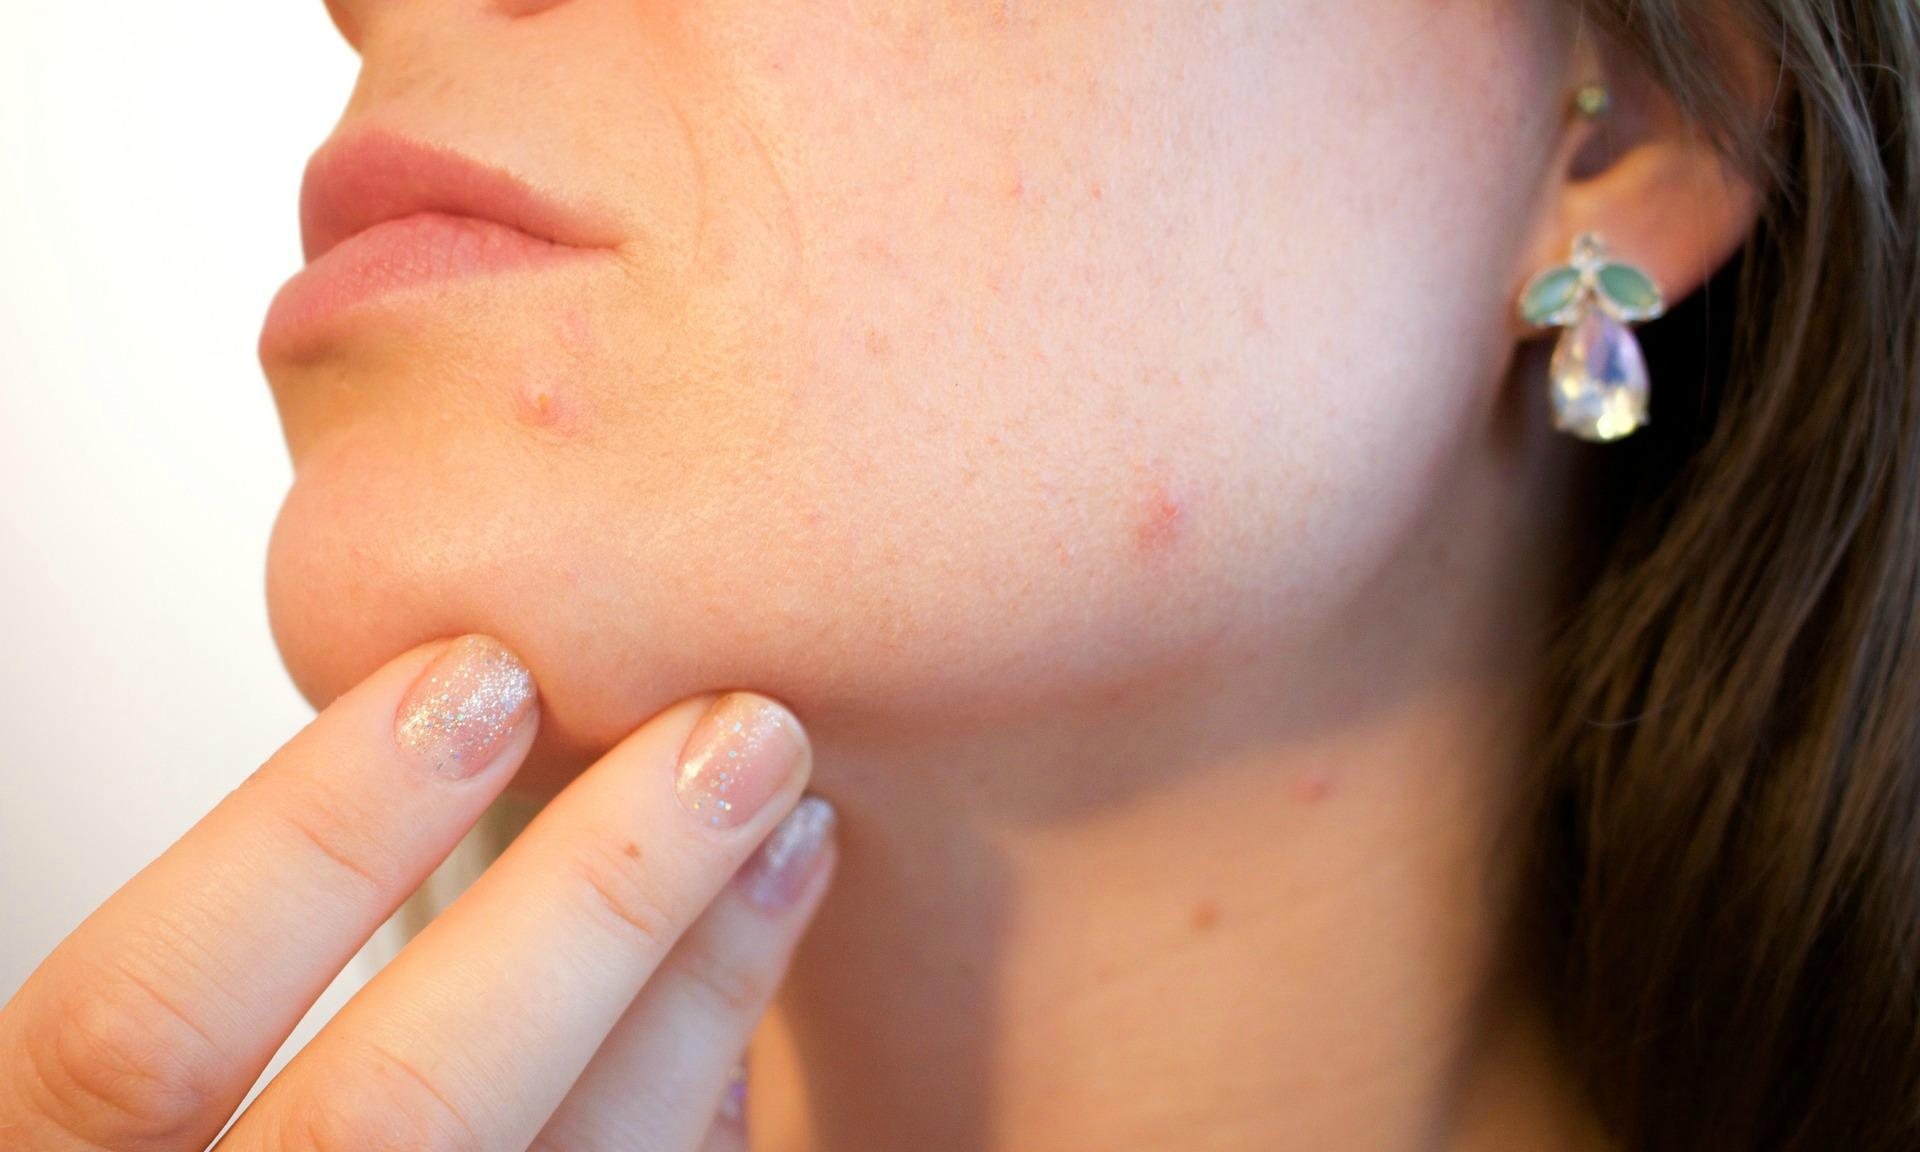 Vegan Acne and Diet